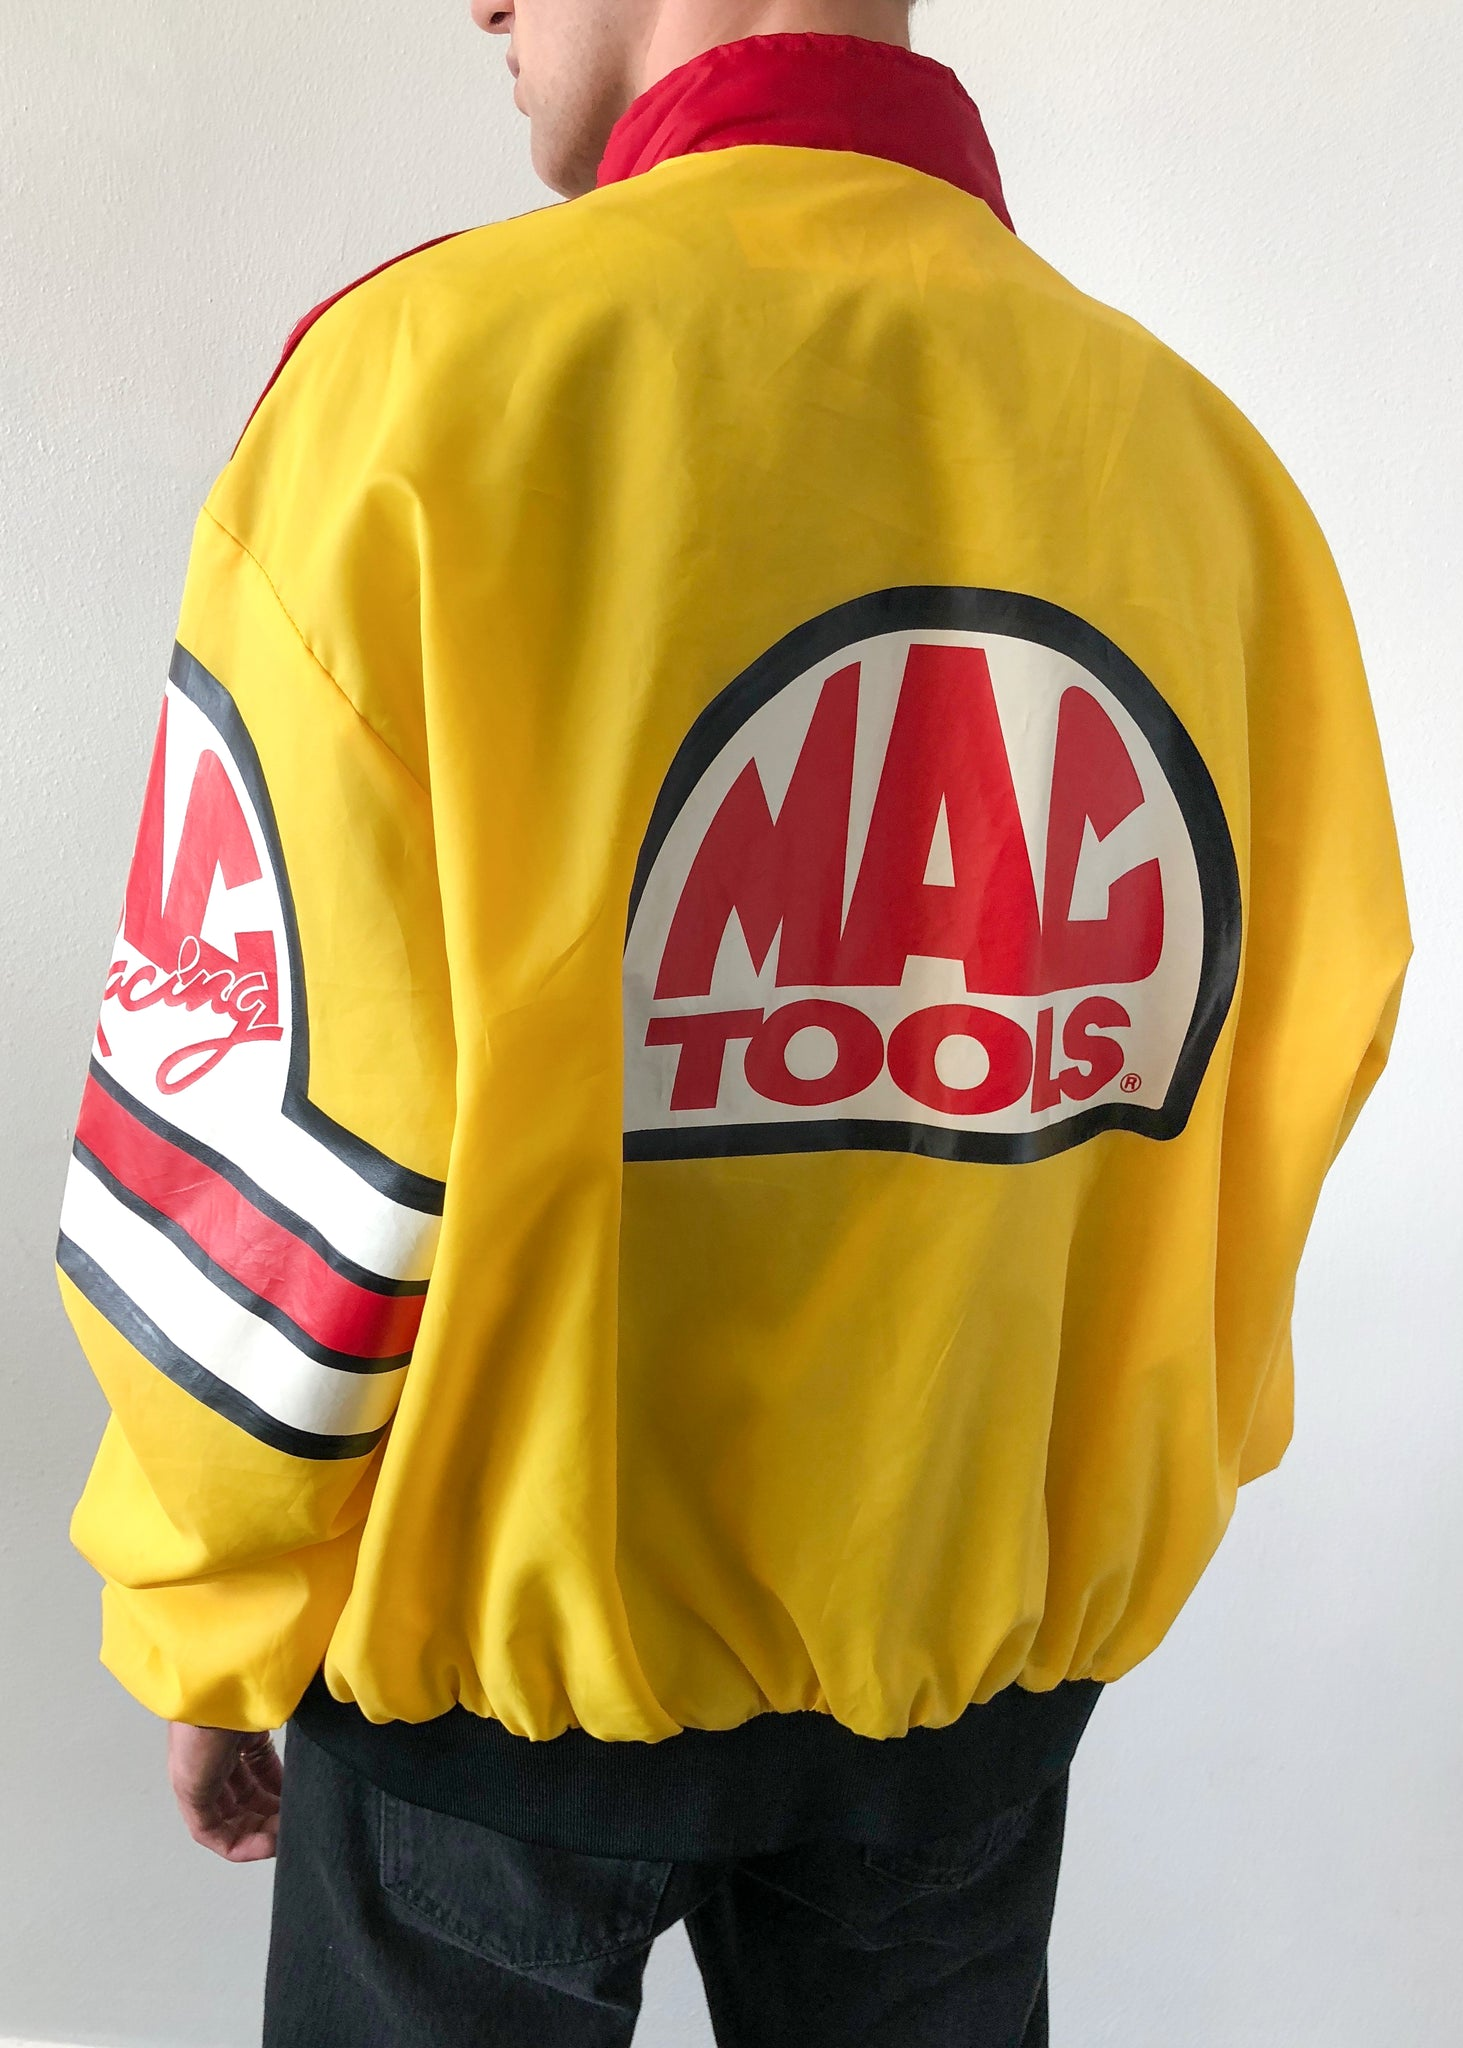 Mac Tools Jacket